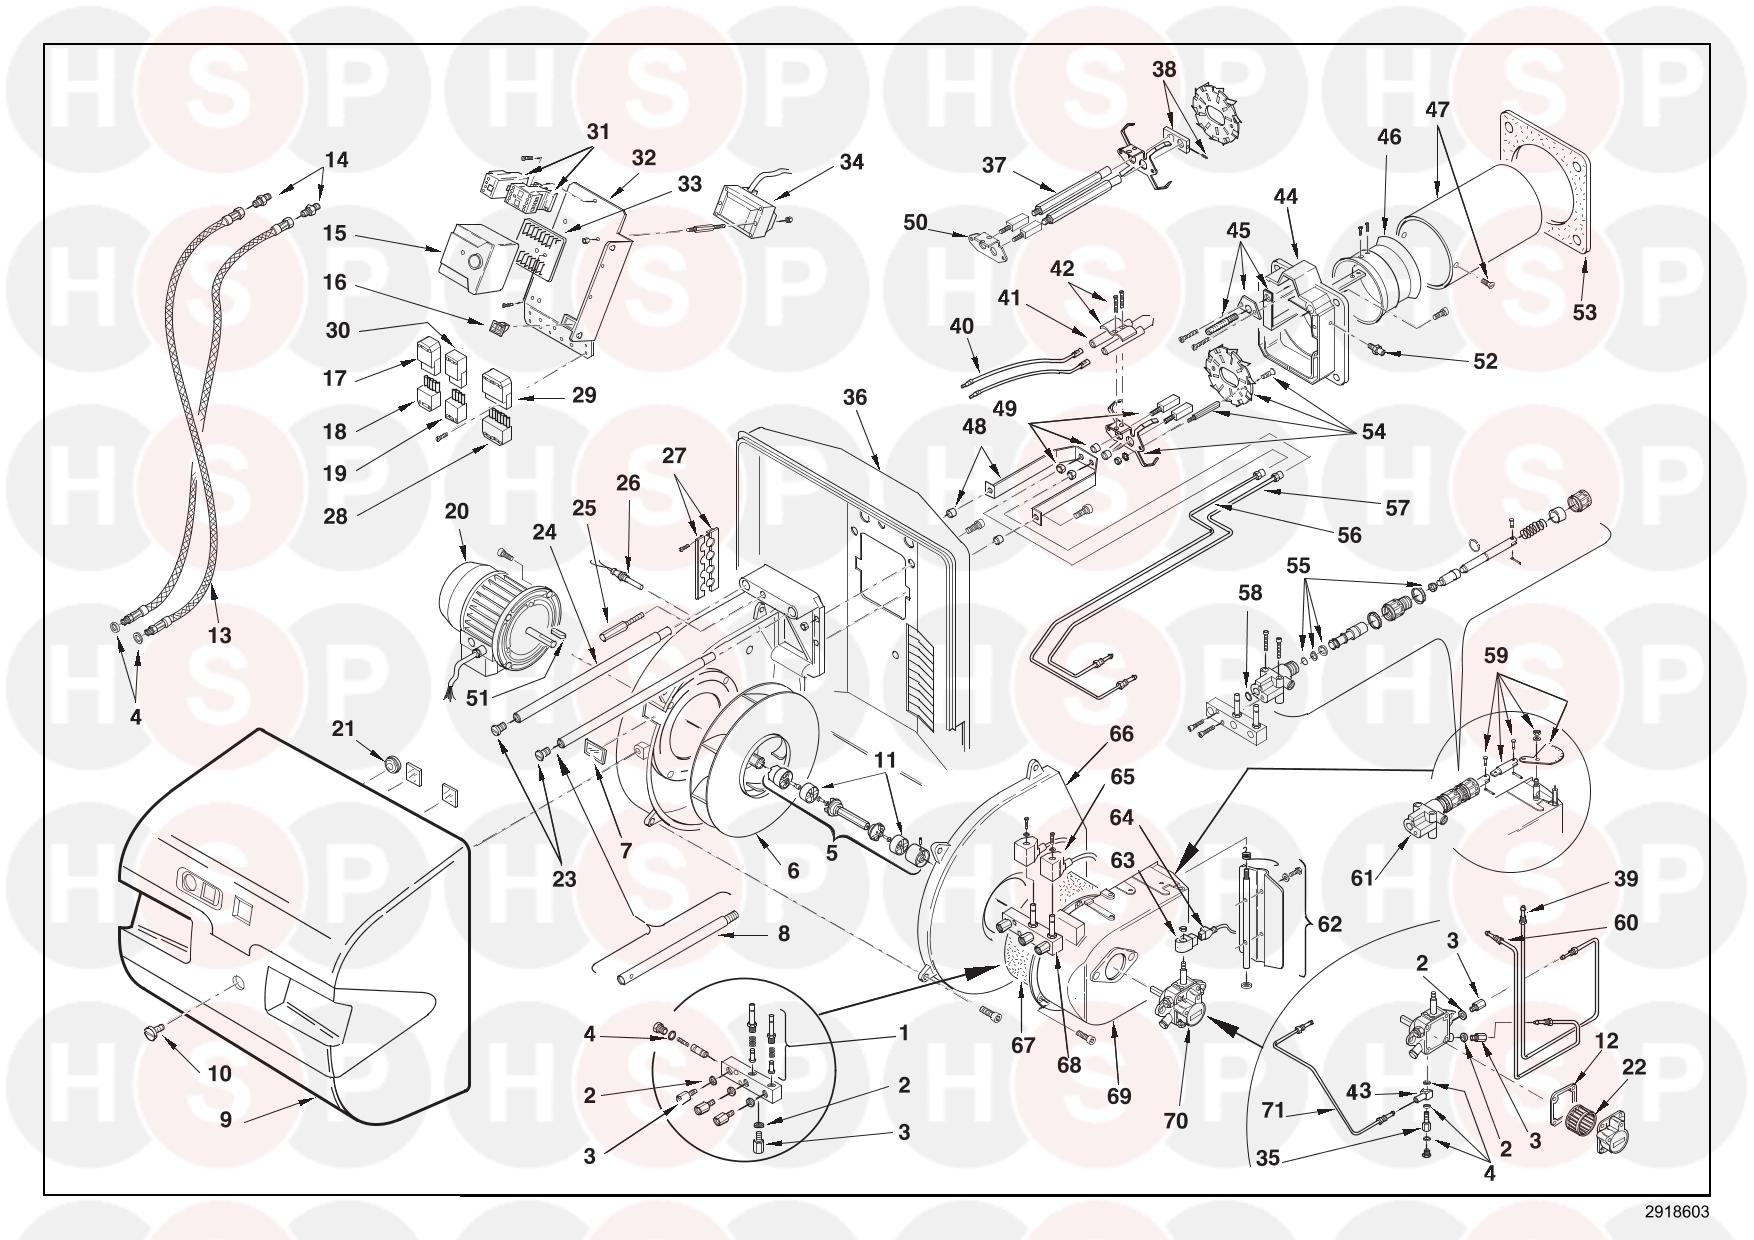 Riello RL 50 3470810 (TYPE 979 T) (BURNER EXPLODED VIEW